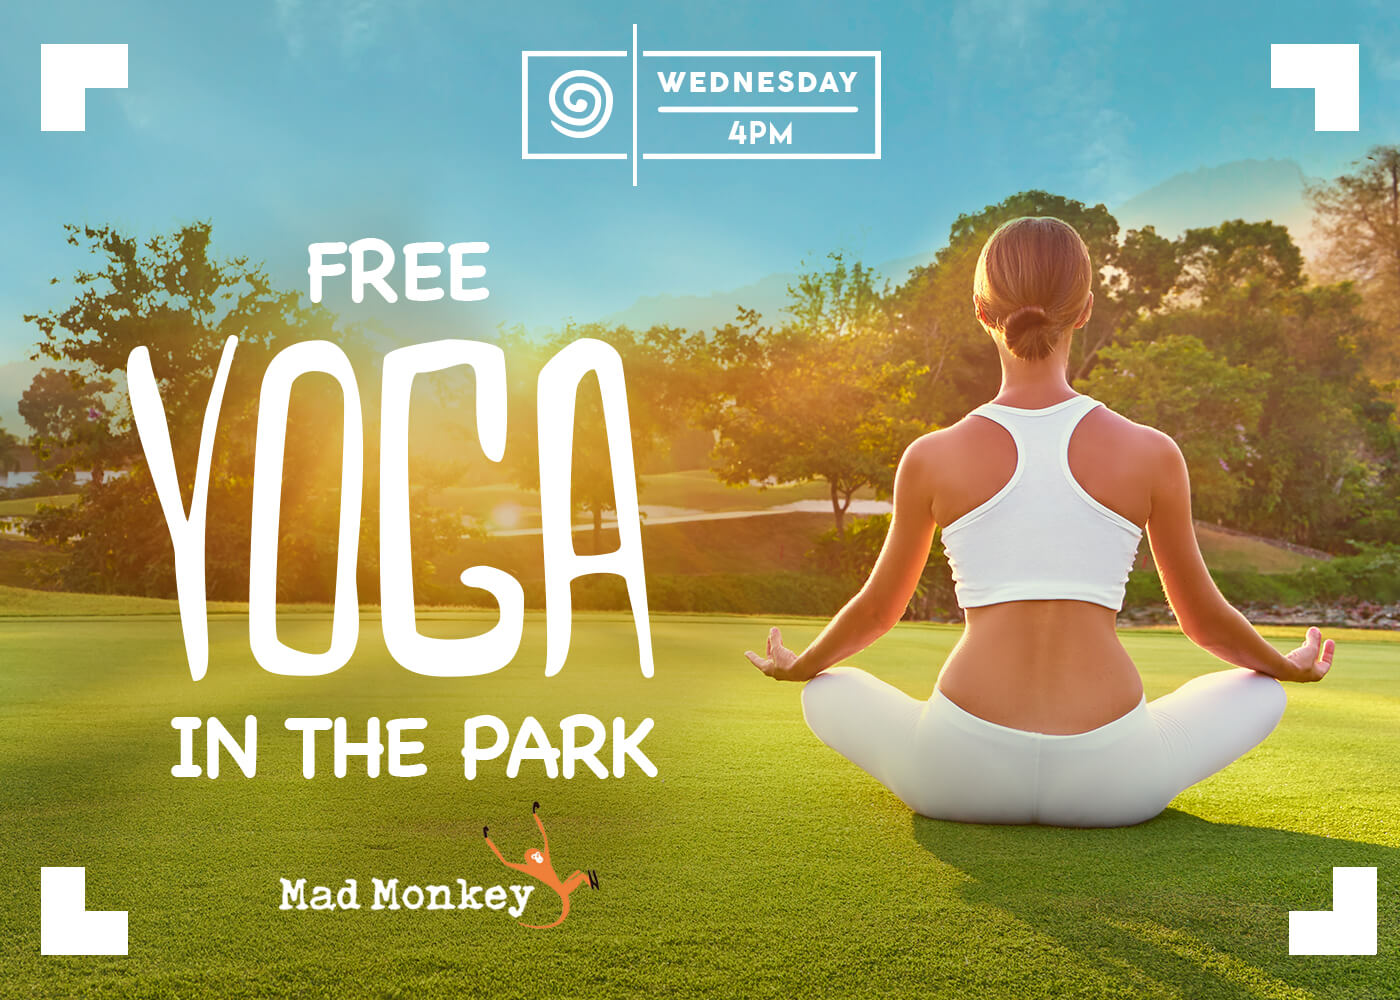 free-events-yoga-in-the-park-product-image